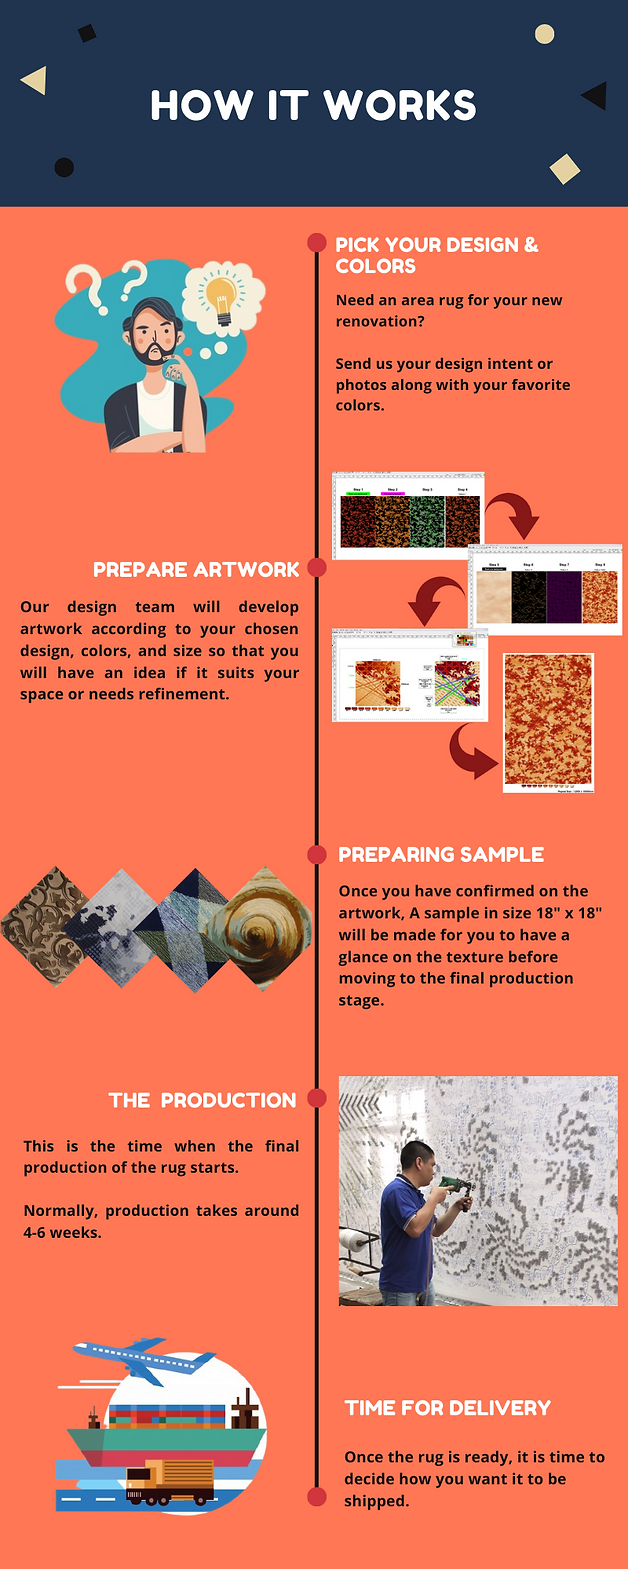 How to order an area rug